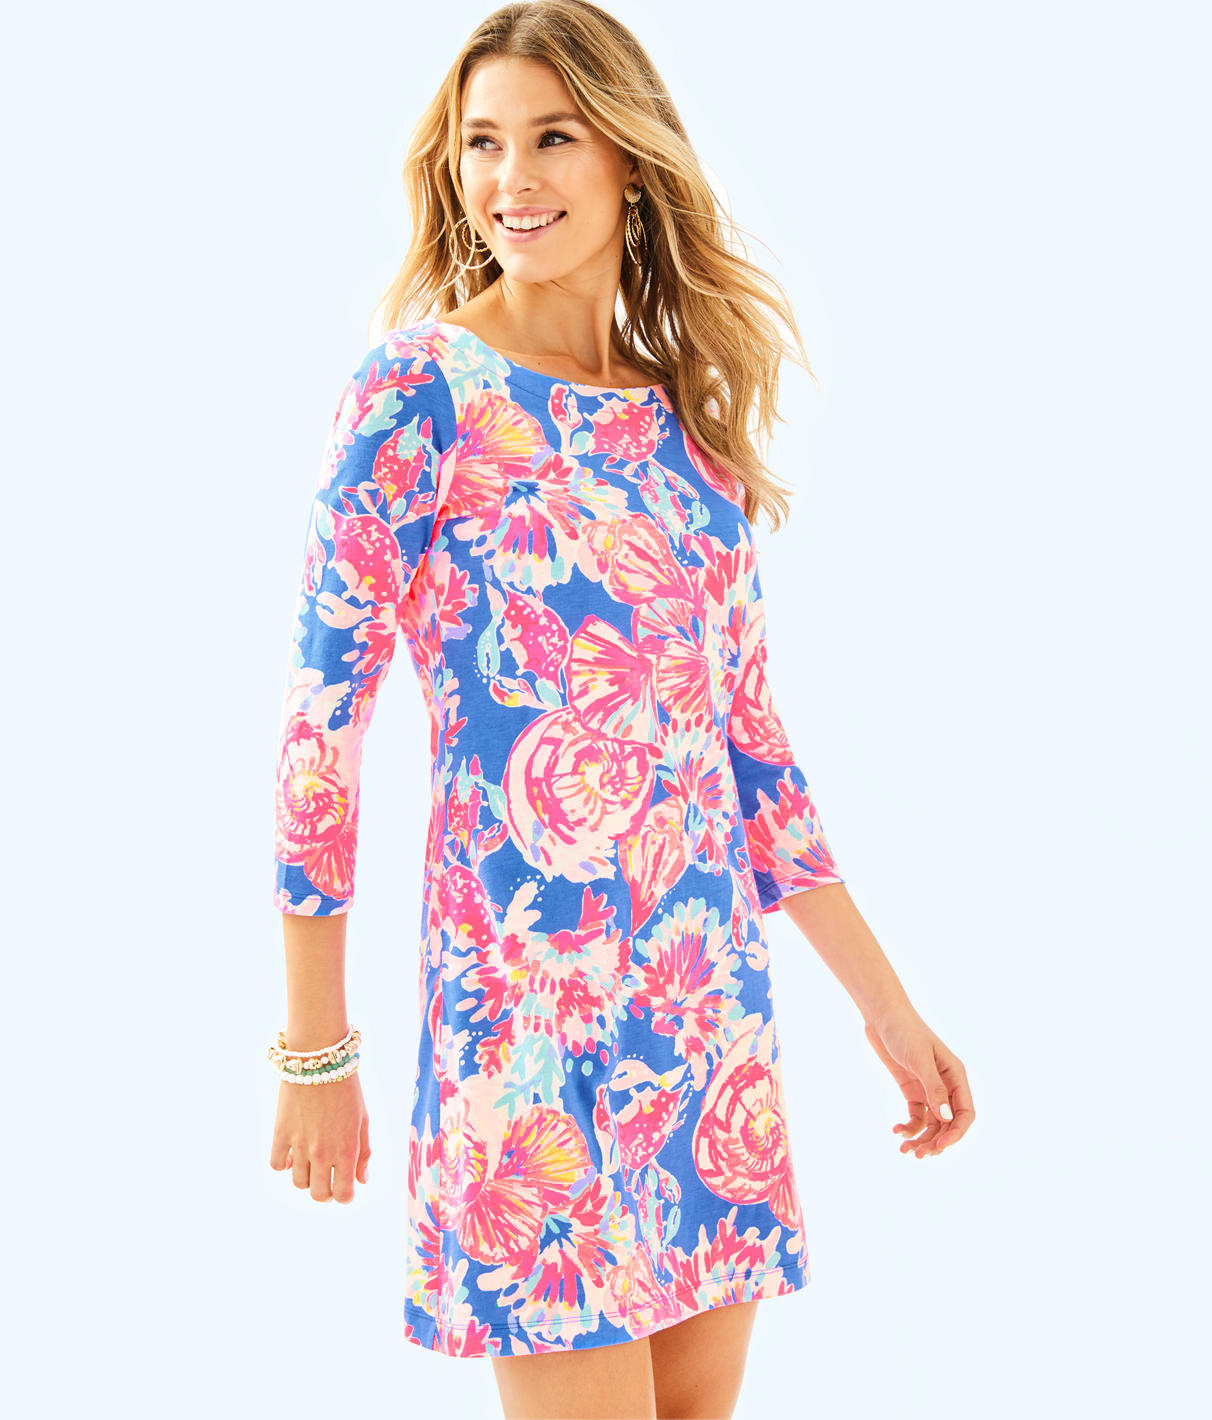 Lilly Pulitzer Lilly Pulitzer Womens Noelle Dress